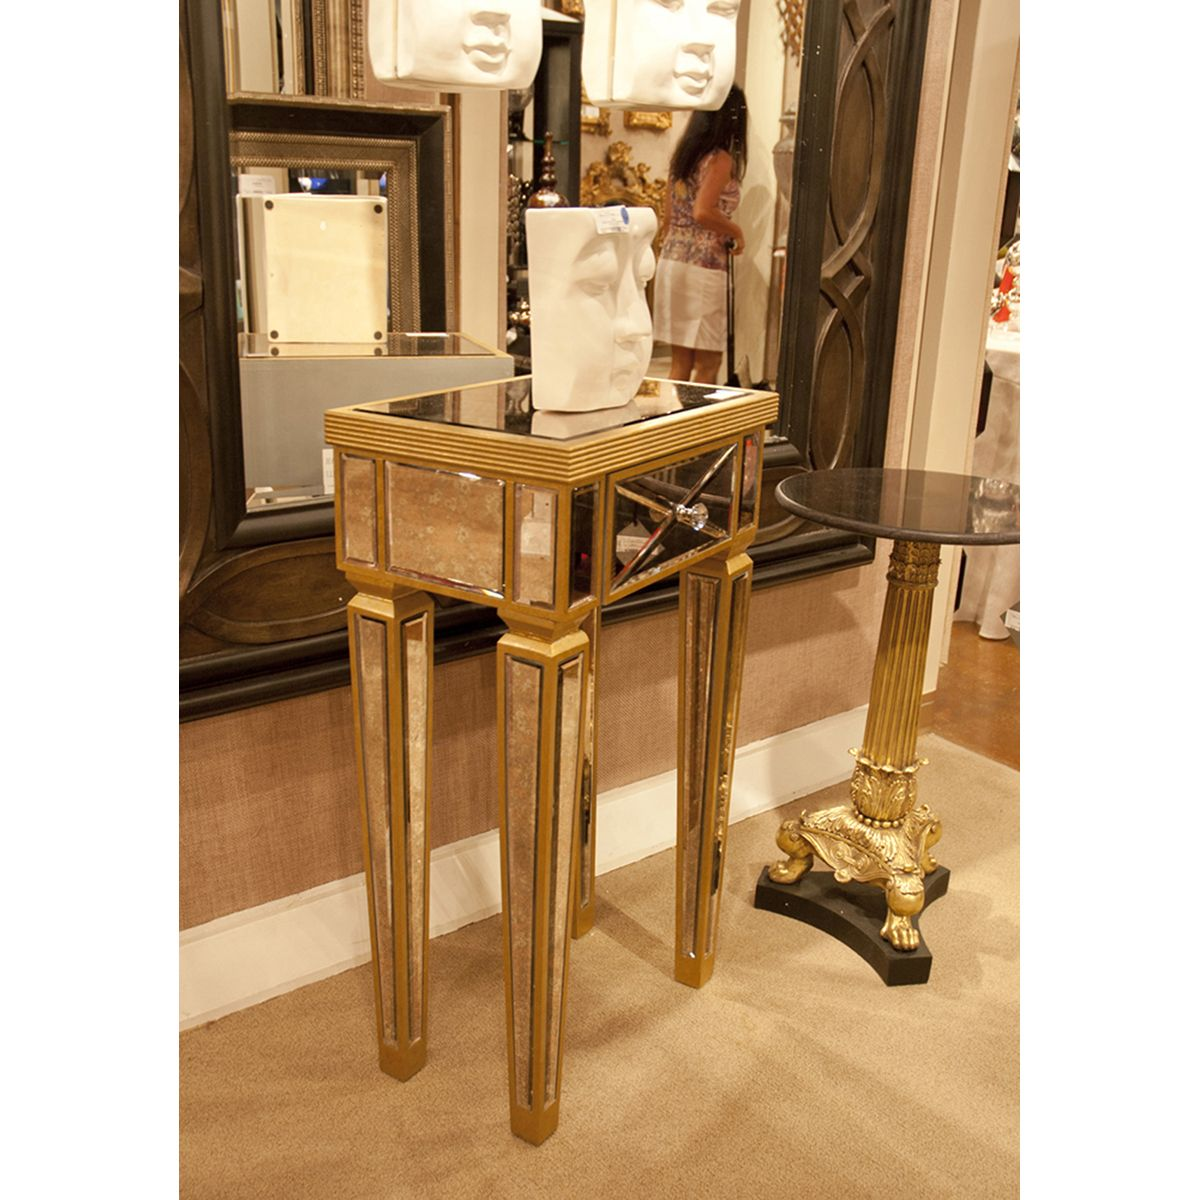 Howard elliott antique gold mirrored pedestal 99066 howard explore gold end table end tables and more howard elliott antique gold mirrored pedestal 99066 geotapseo Image collections